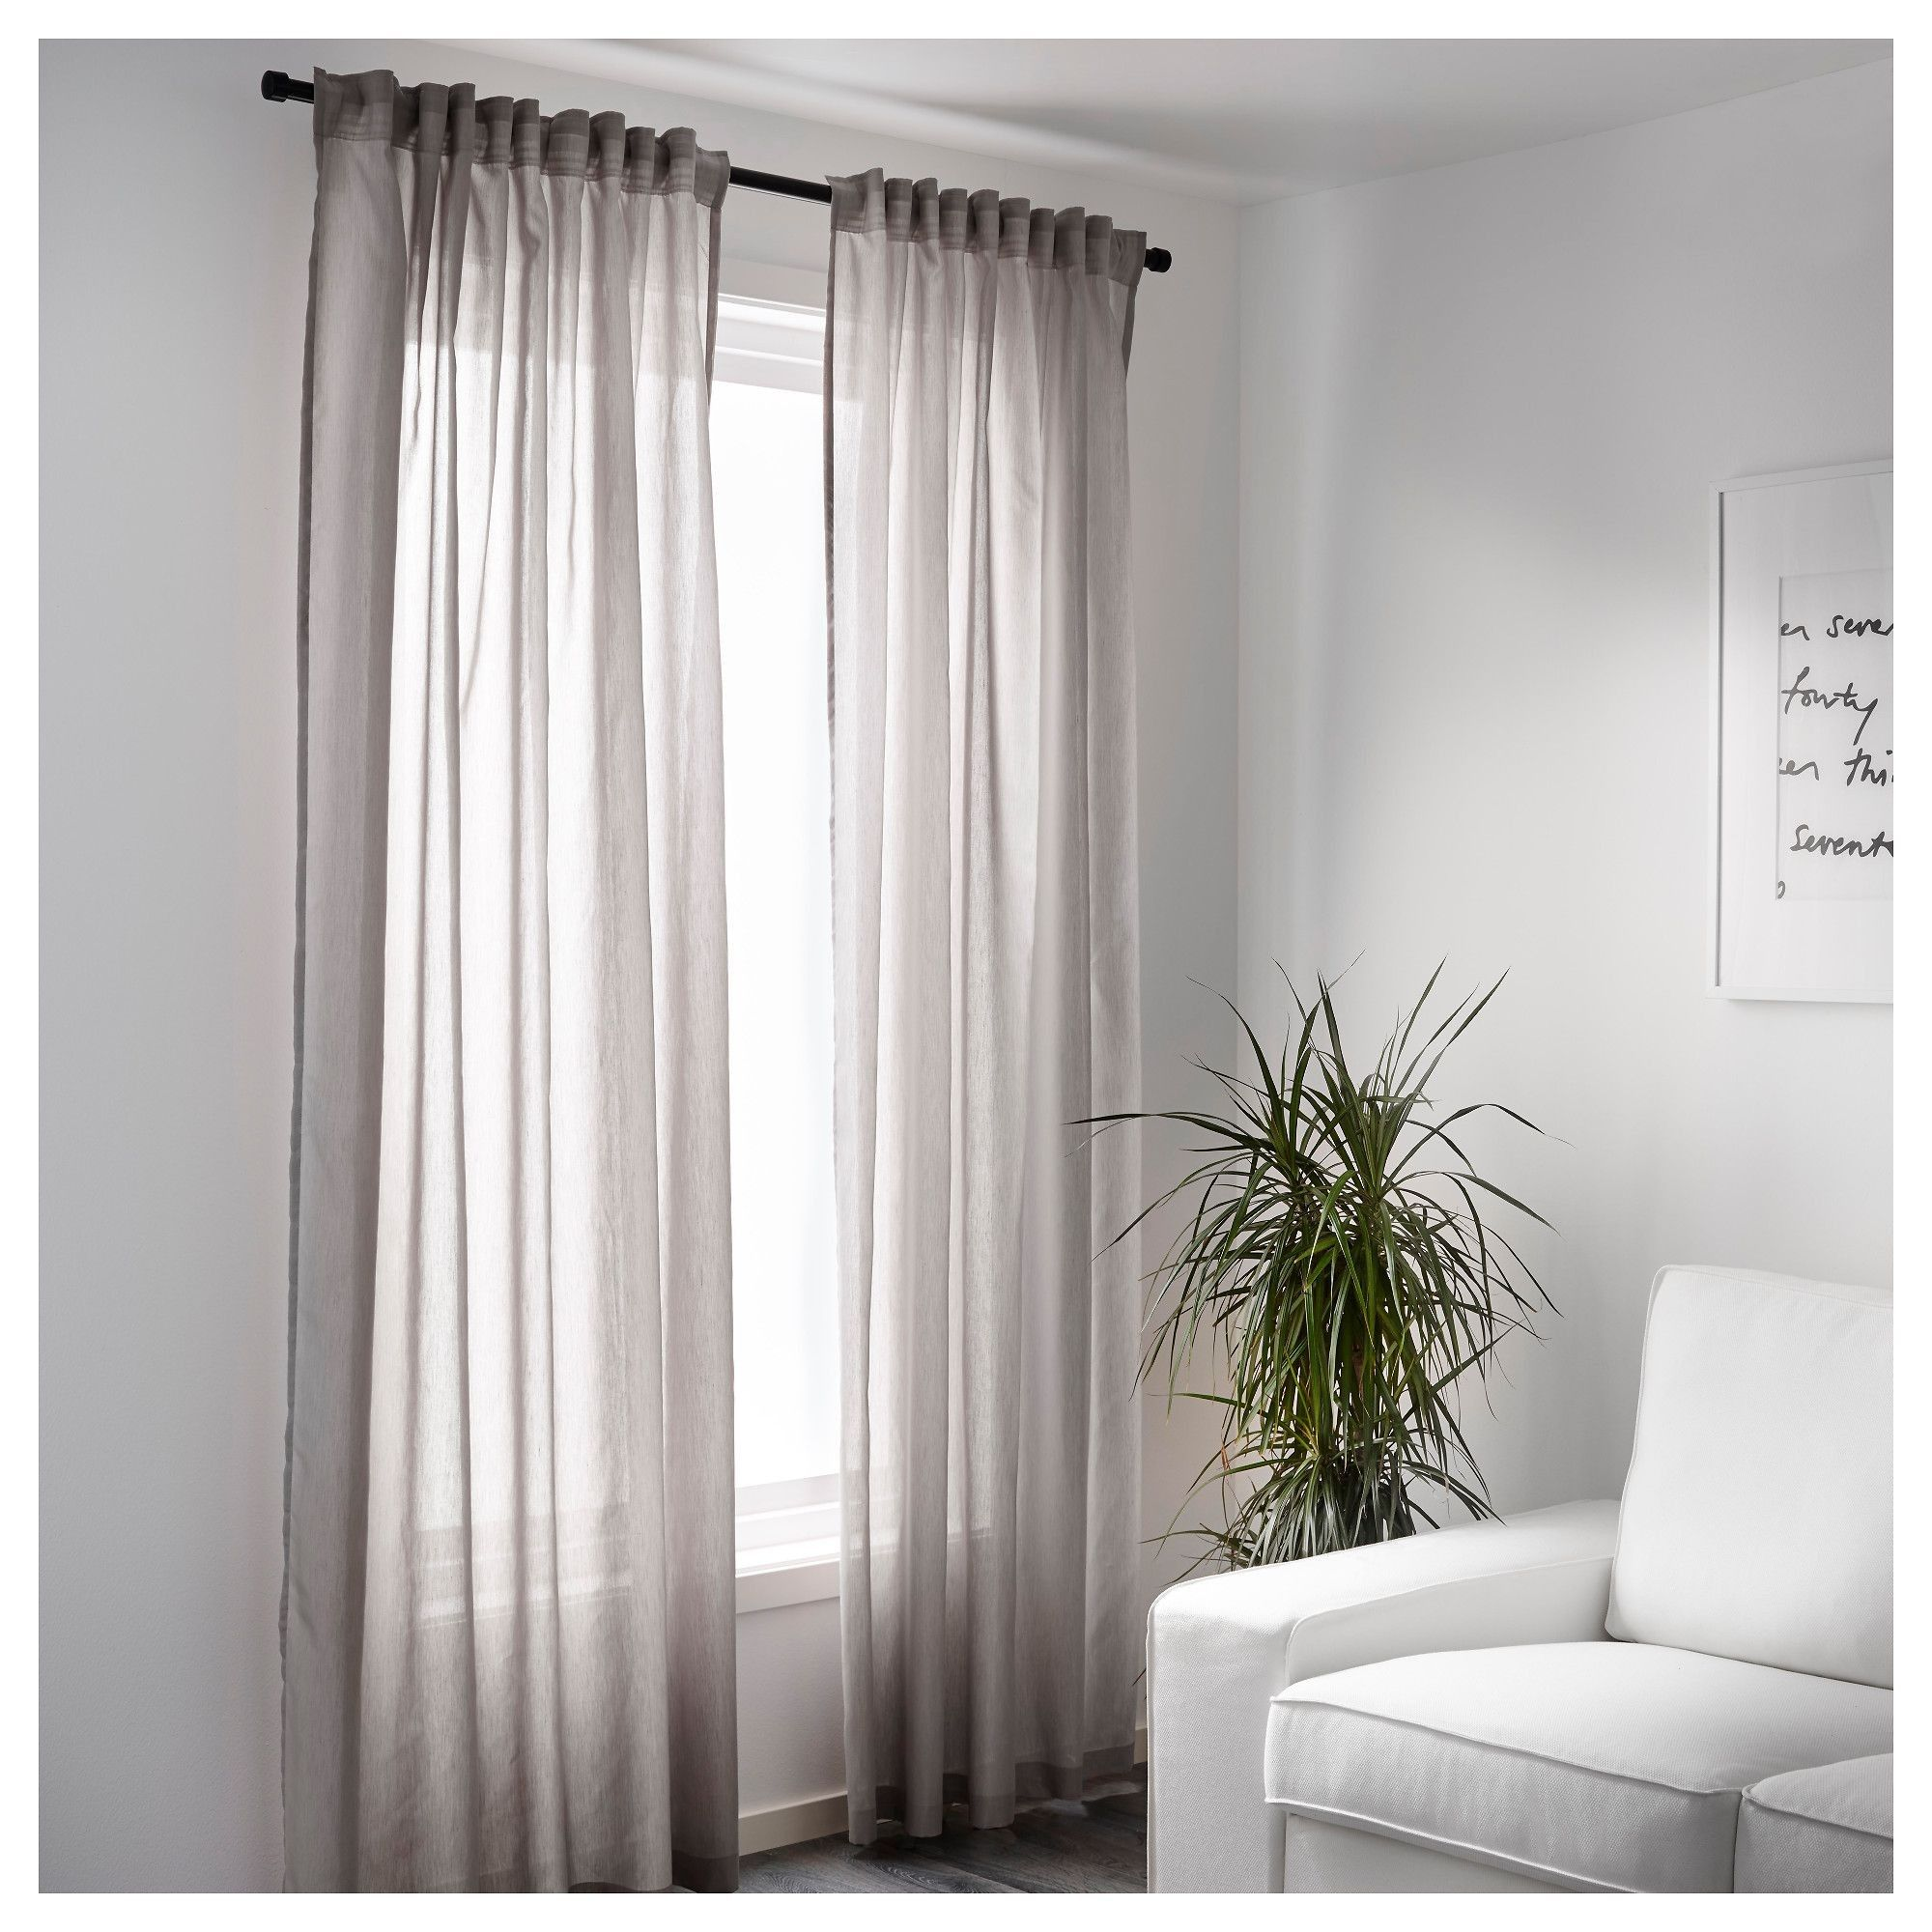 Unique Extra Long Curtain Rods 150 Curtains With Blinds